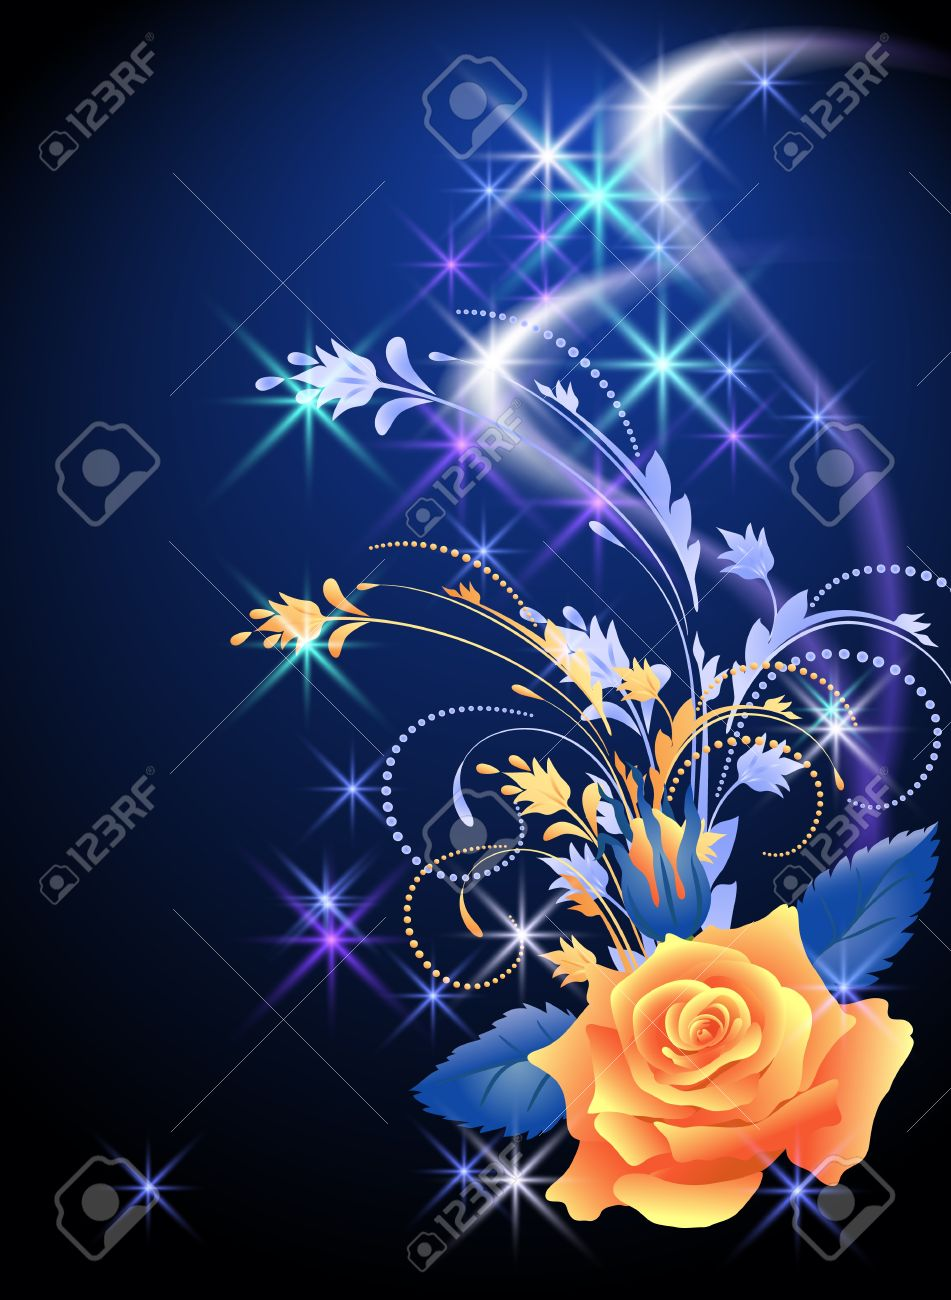 Glowing background with rose and stars - 14404885